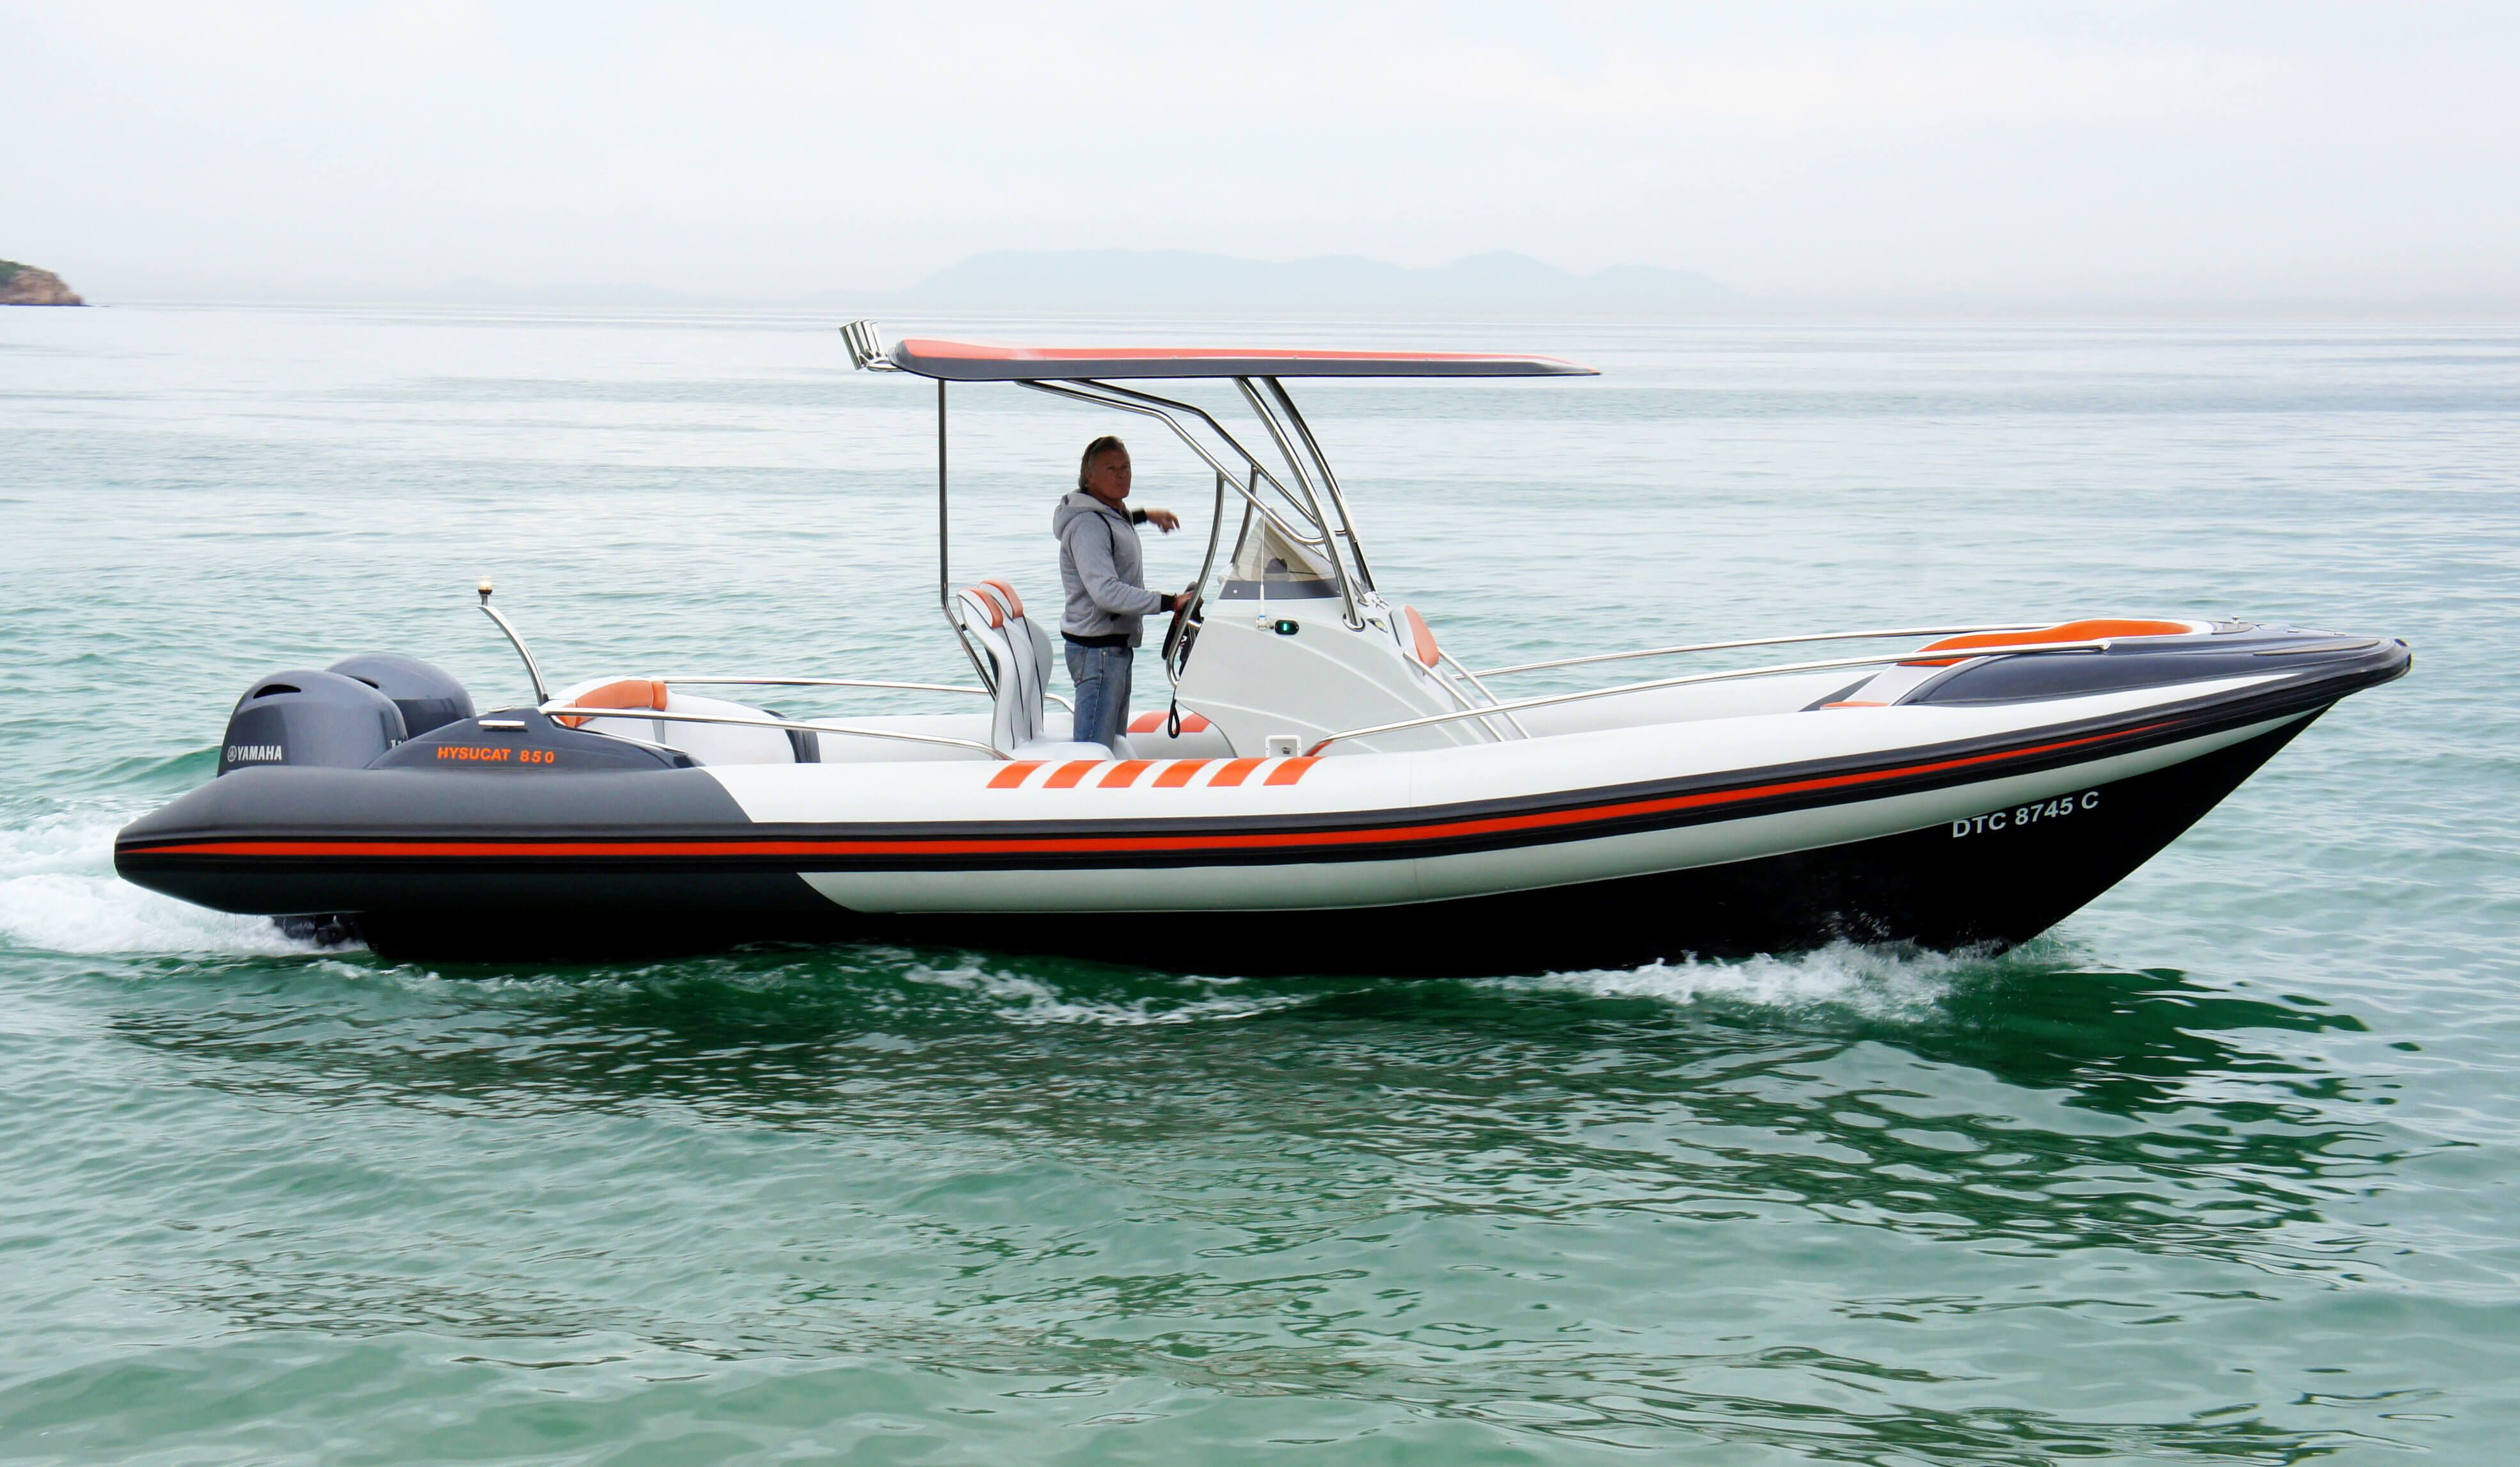 Get the 8 5m Rigid Inflatable Boat (Rib Boats) from Hysucat